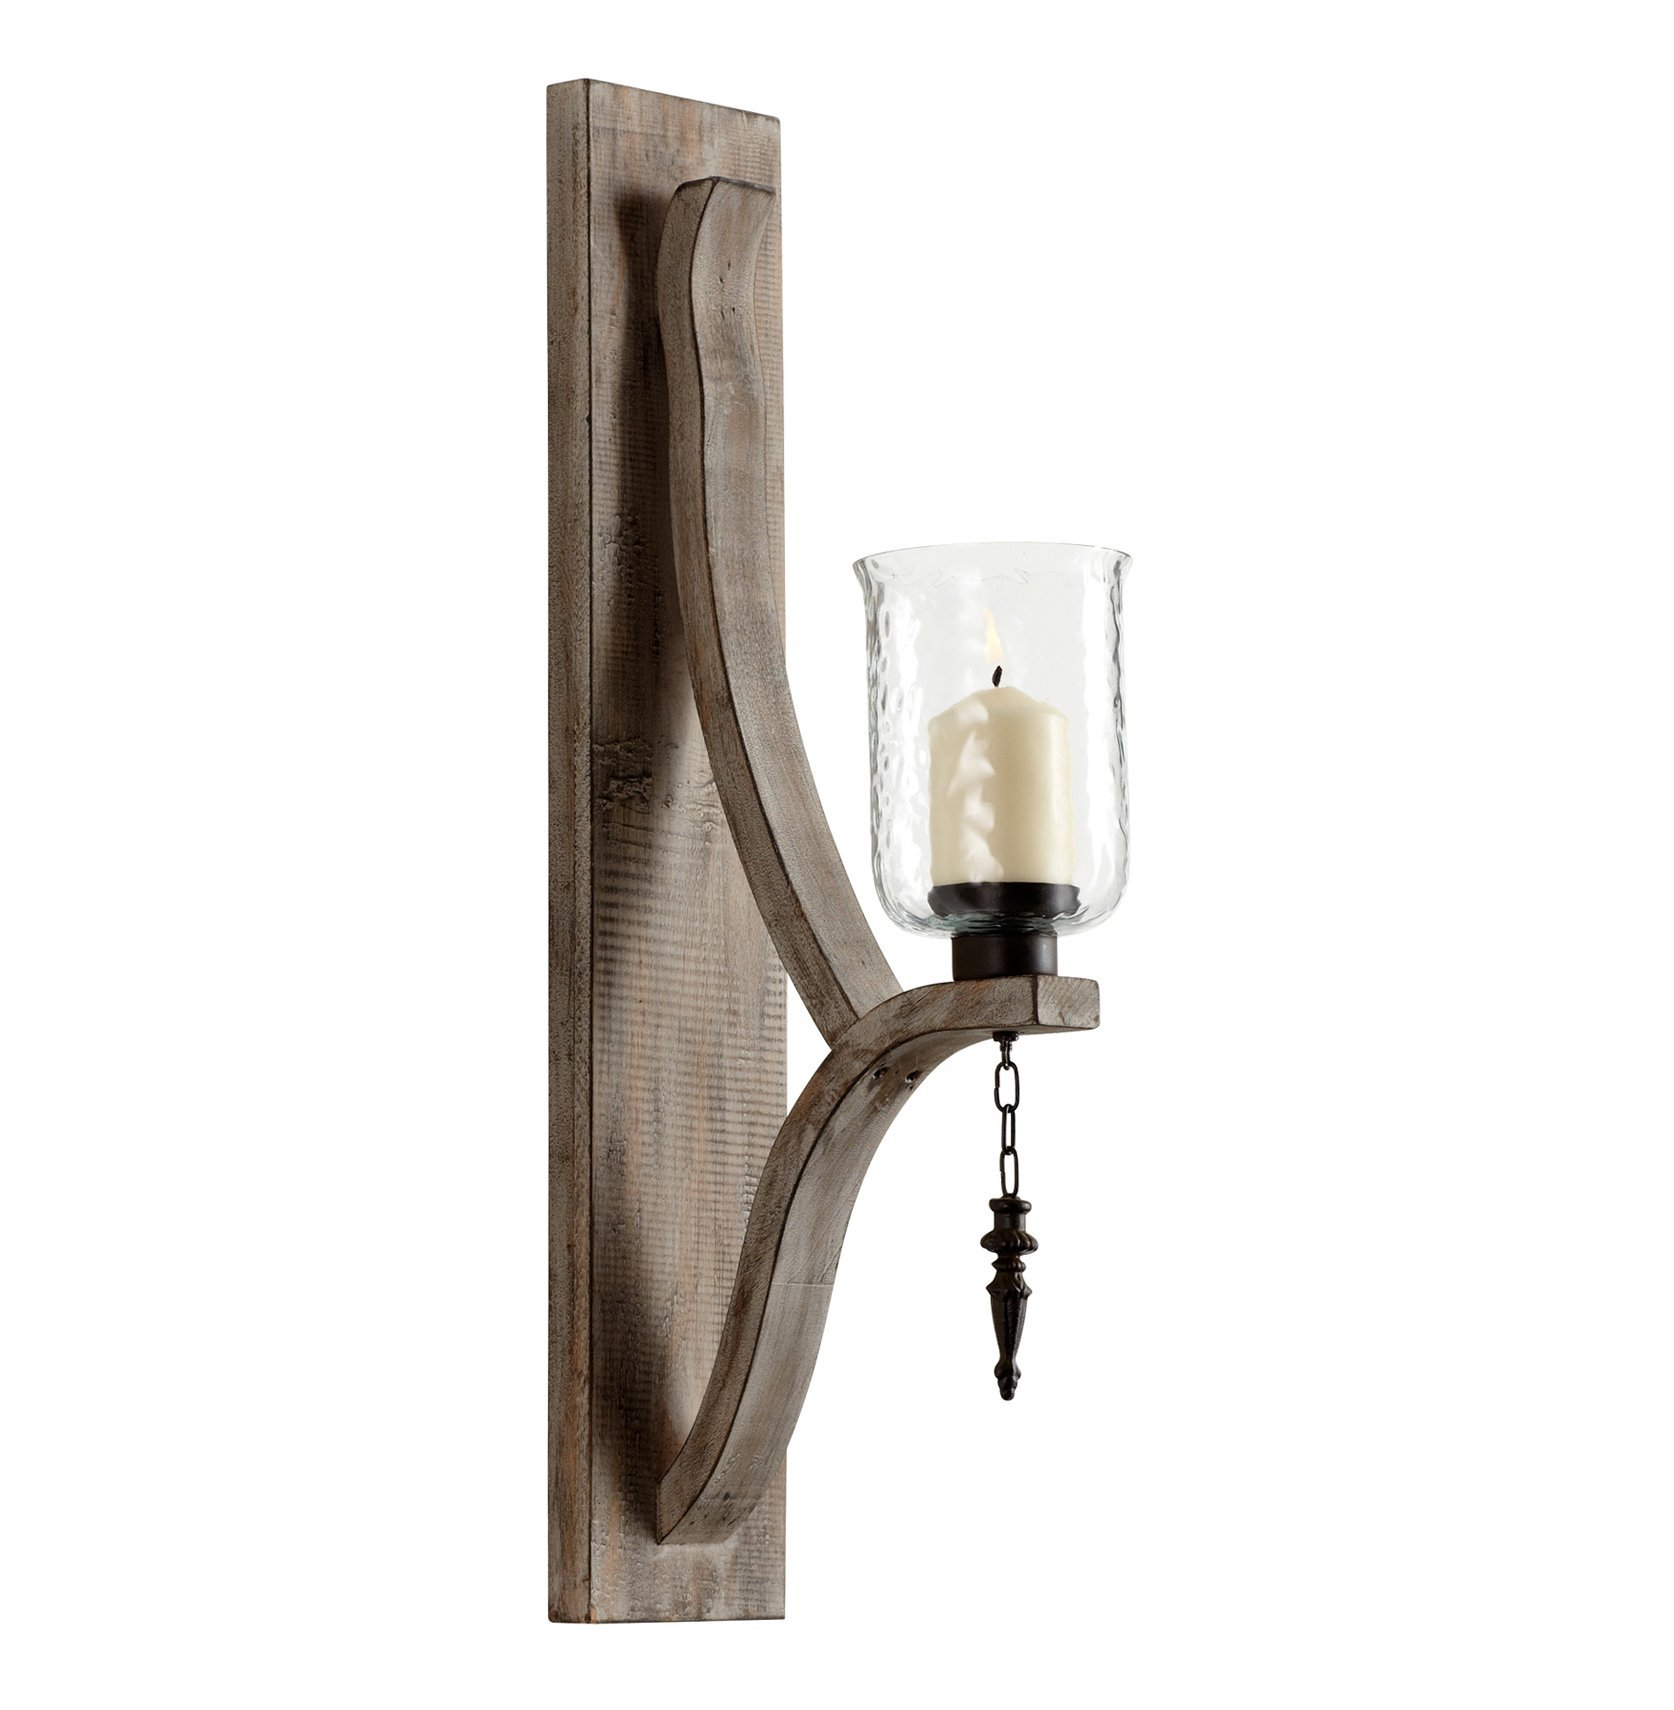 Giorno Country Rustic Chunky Wood Candle Sconce